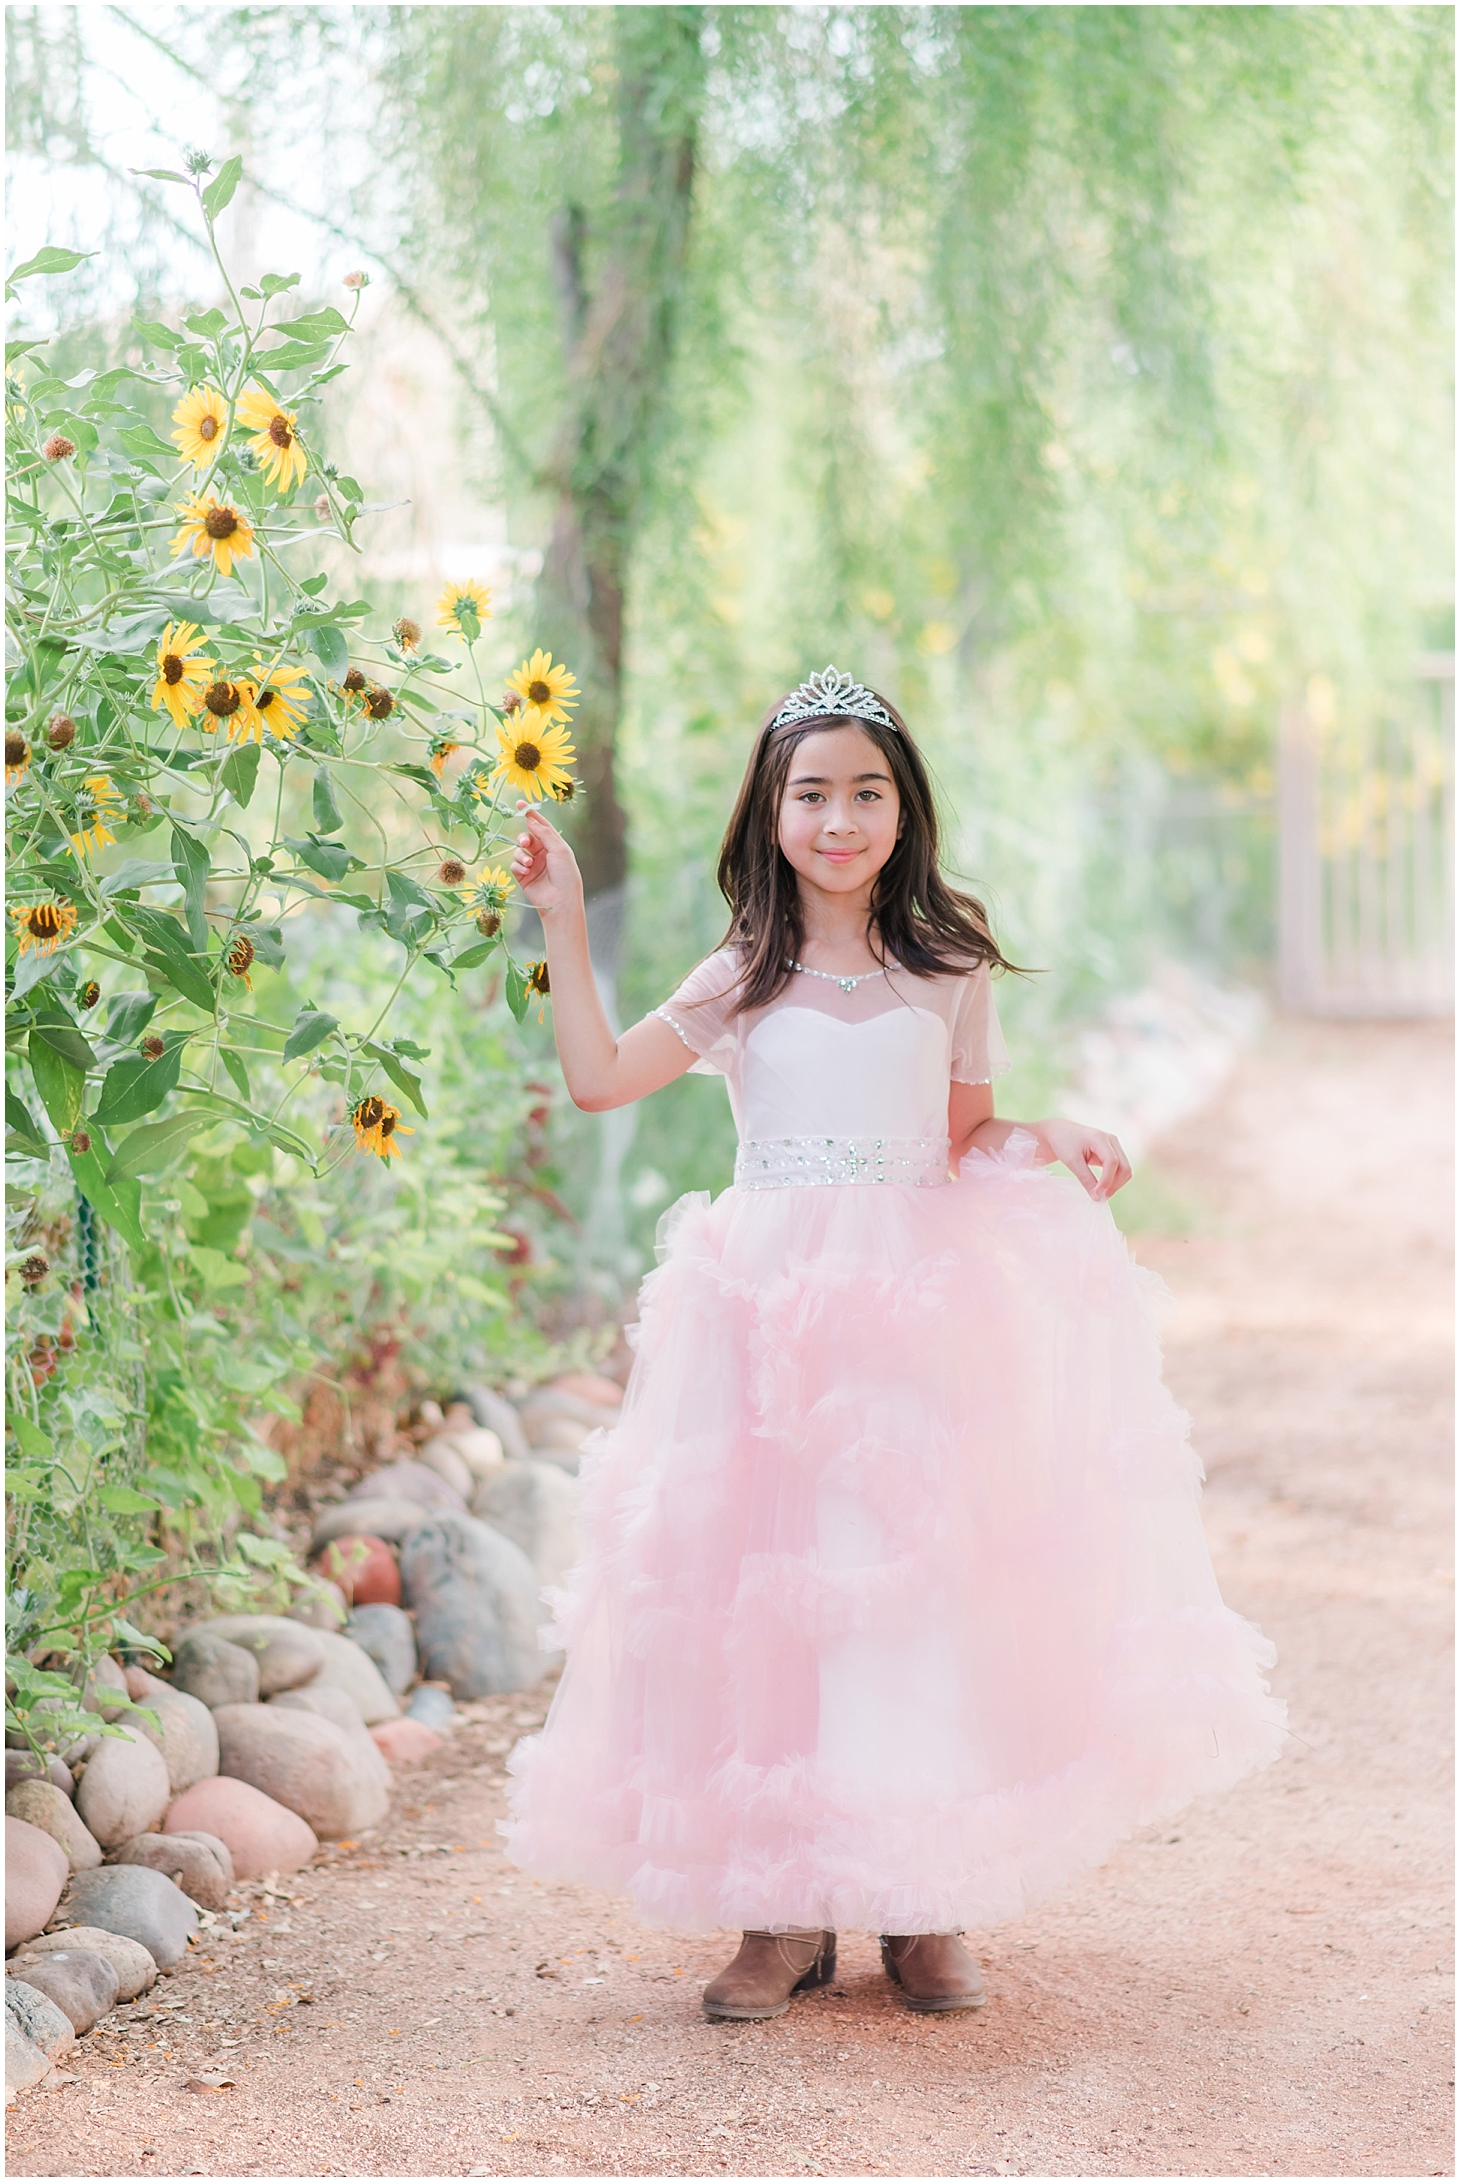 I had Sydney model one of the dresses and tiaras available for rent through Jade Min Photography. I love that she wore cowboy boots with the dress! Isn't she a gorgeous child?